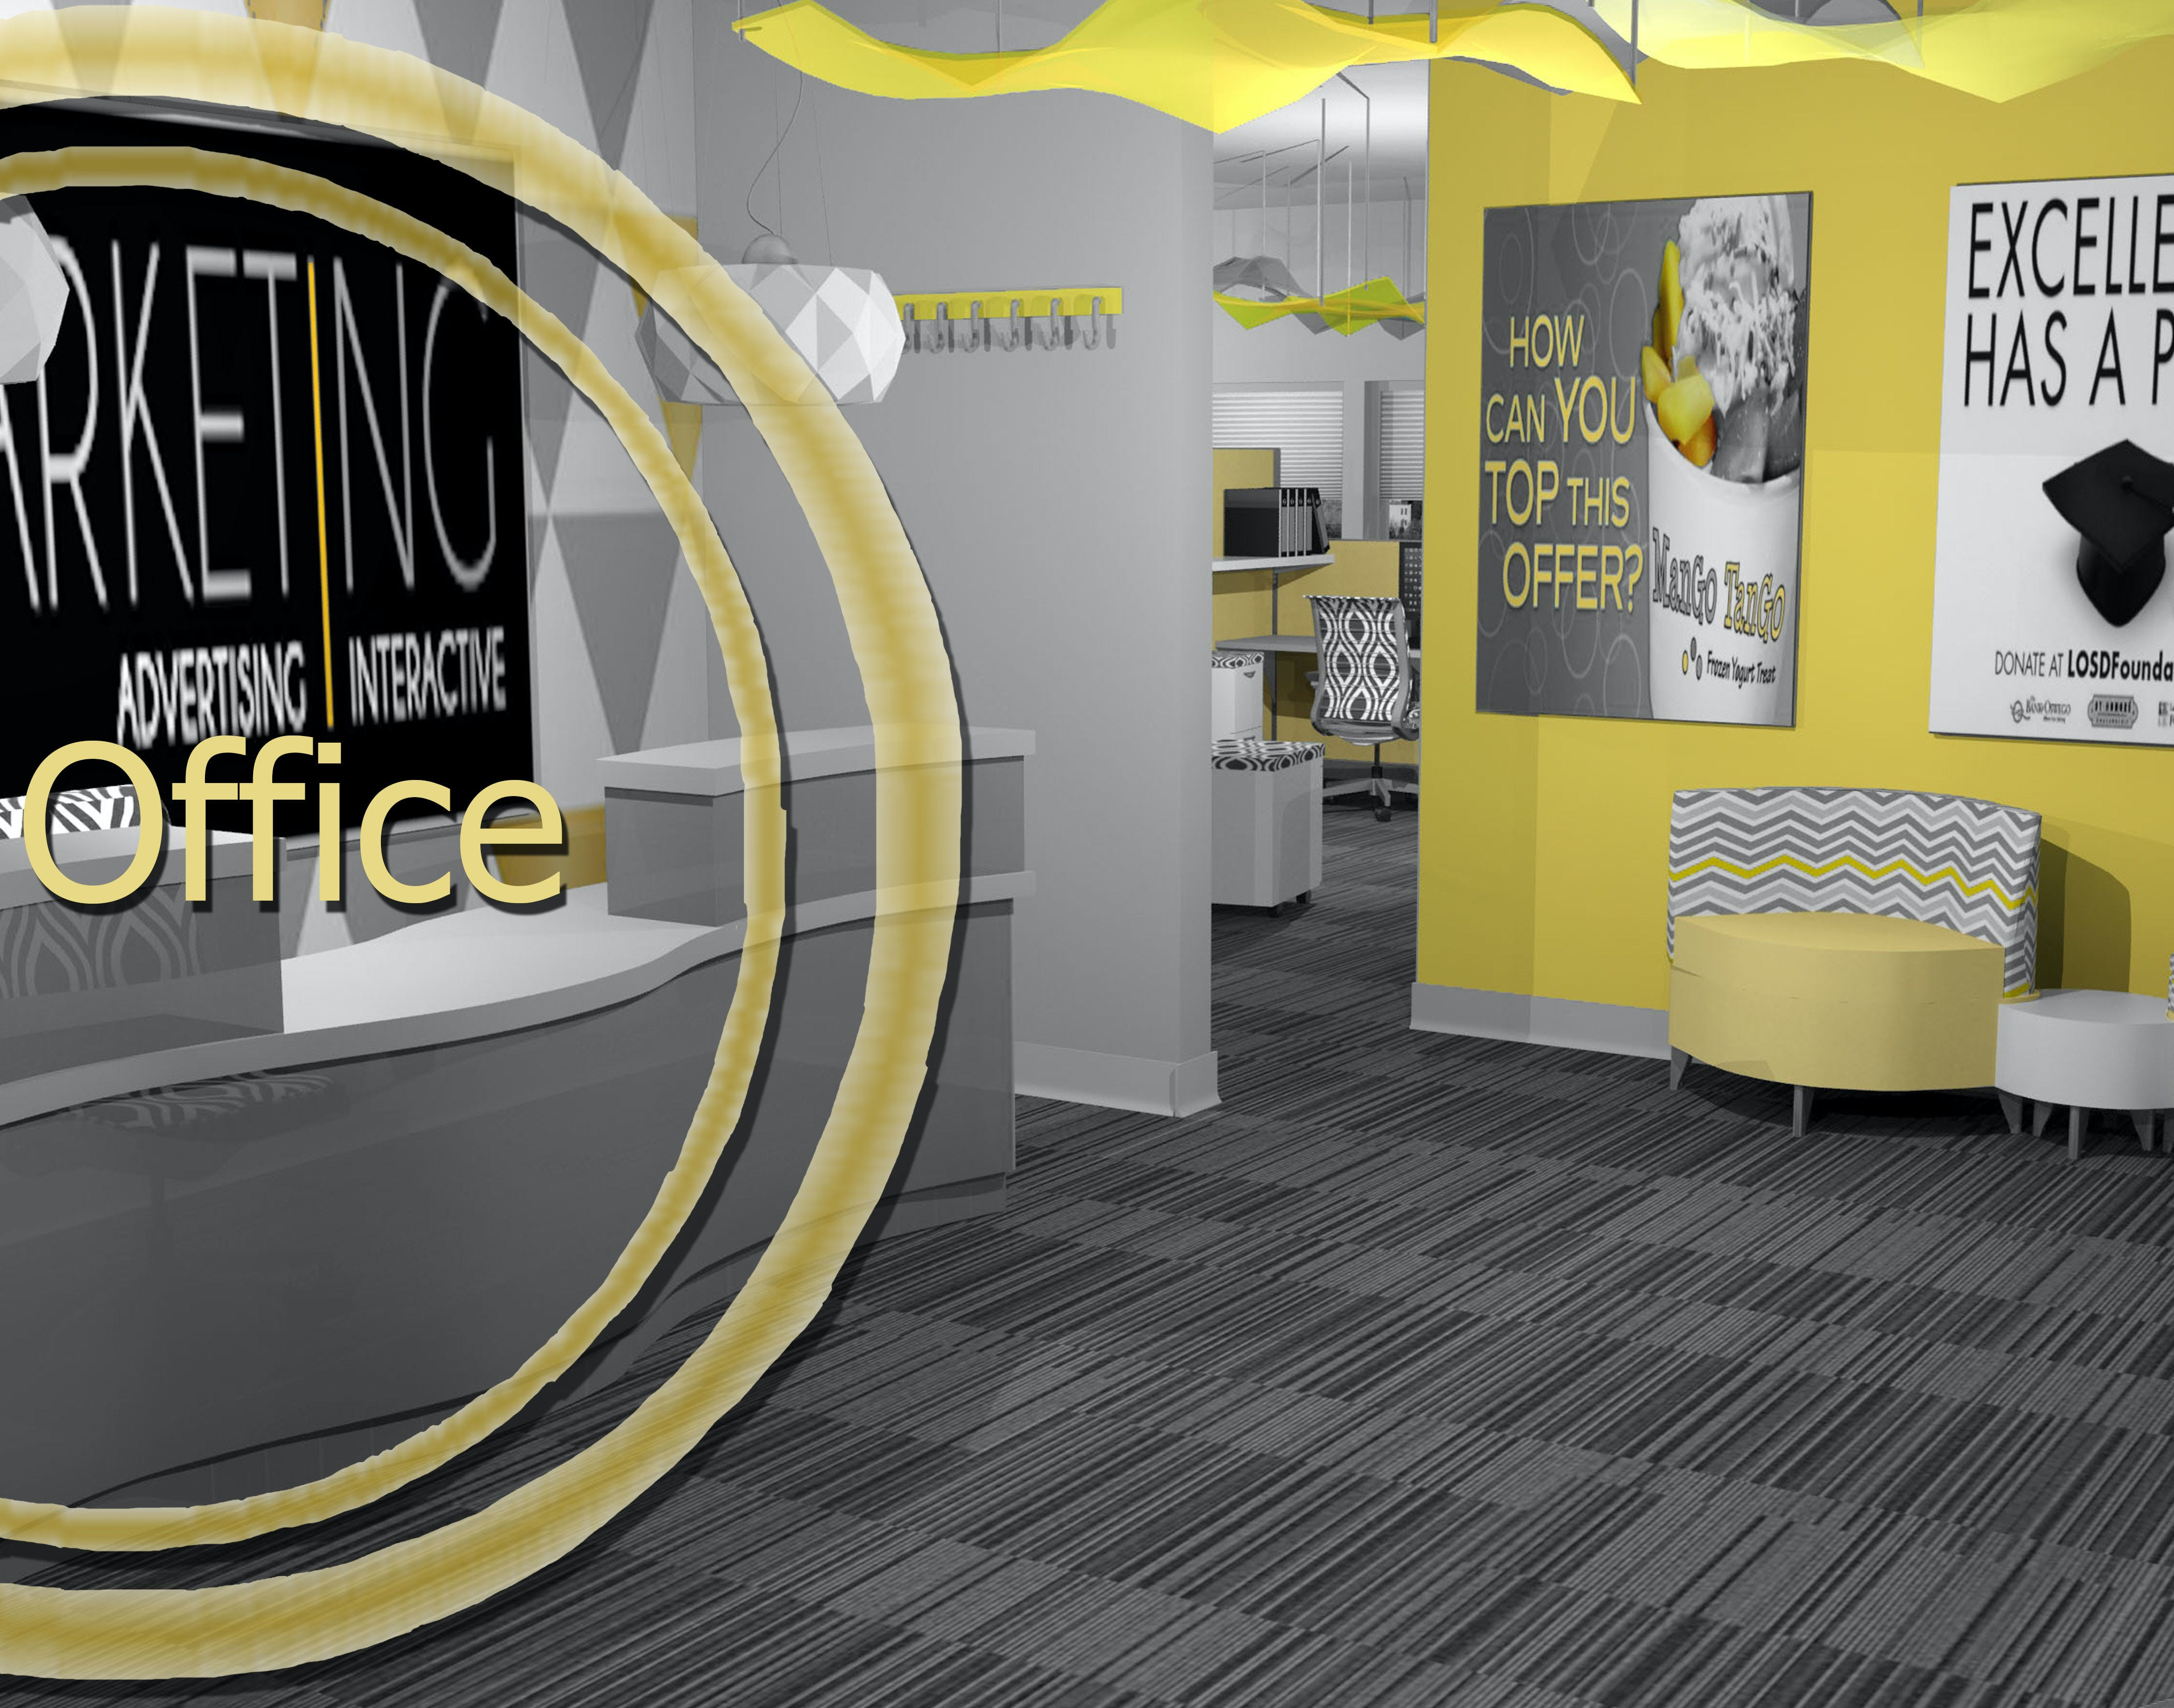 Small ad agency office design kristen nicolais archinect - Interior design job advertisements ...